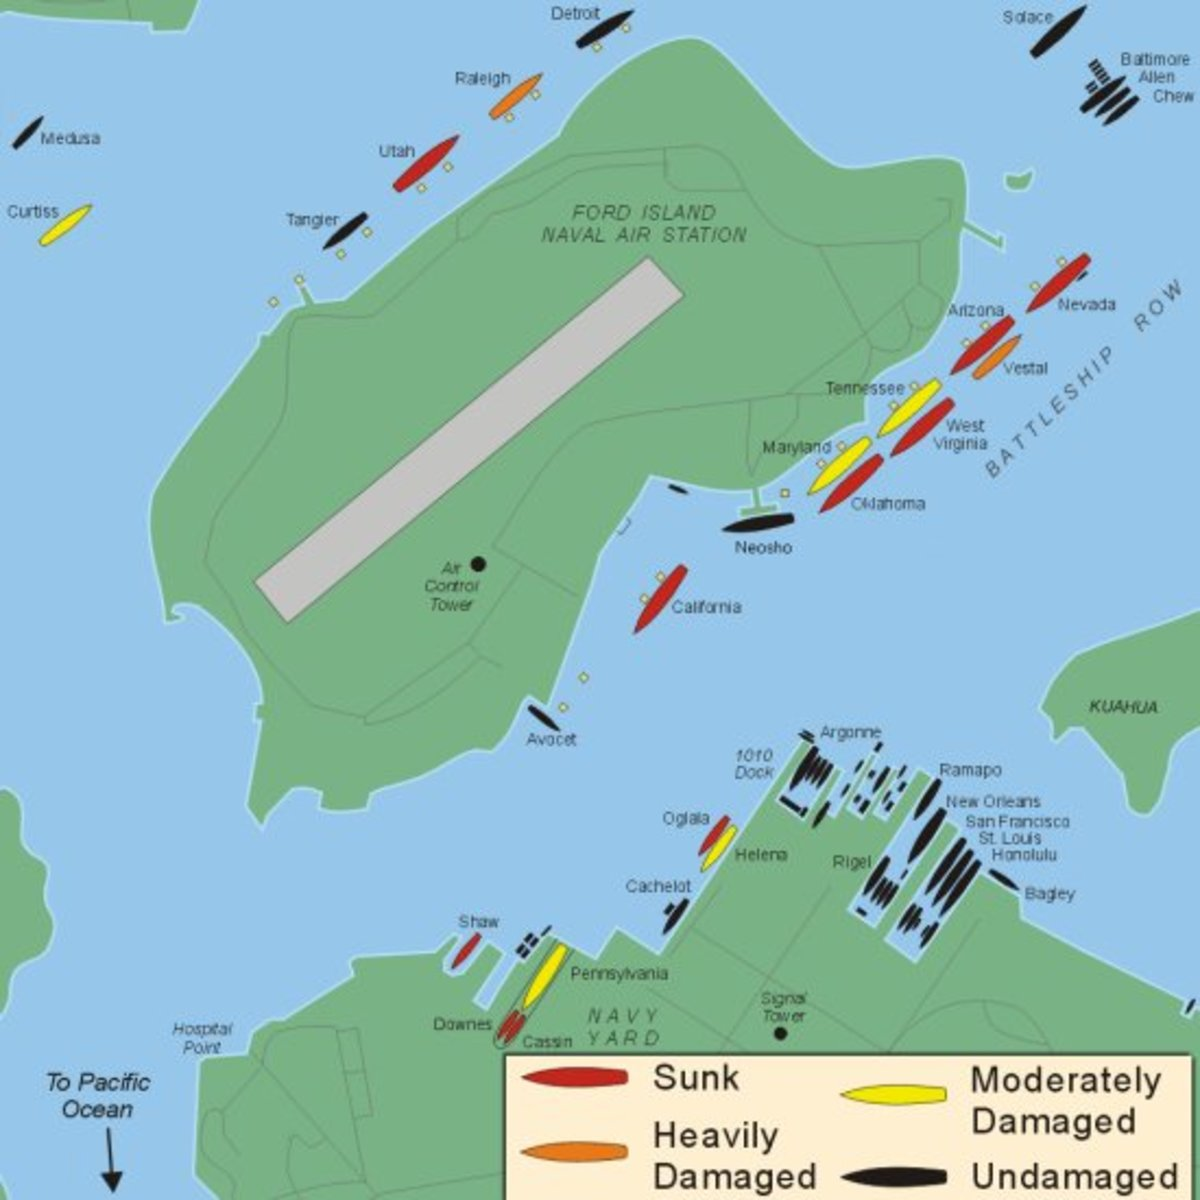 the japanese attack on pearl harbor essay The december 7th 1941, japanese attack on pearl harbor was a great defining moment in history a single carefully planned and well-executed attack removed the united states navy's battleship force as a possible threat to the japanese empire's southward expansion.